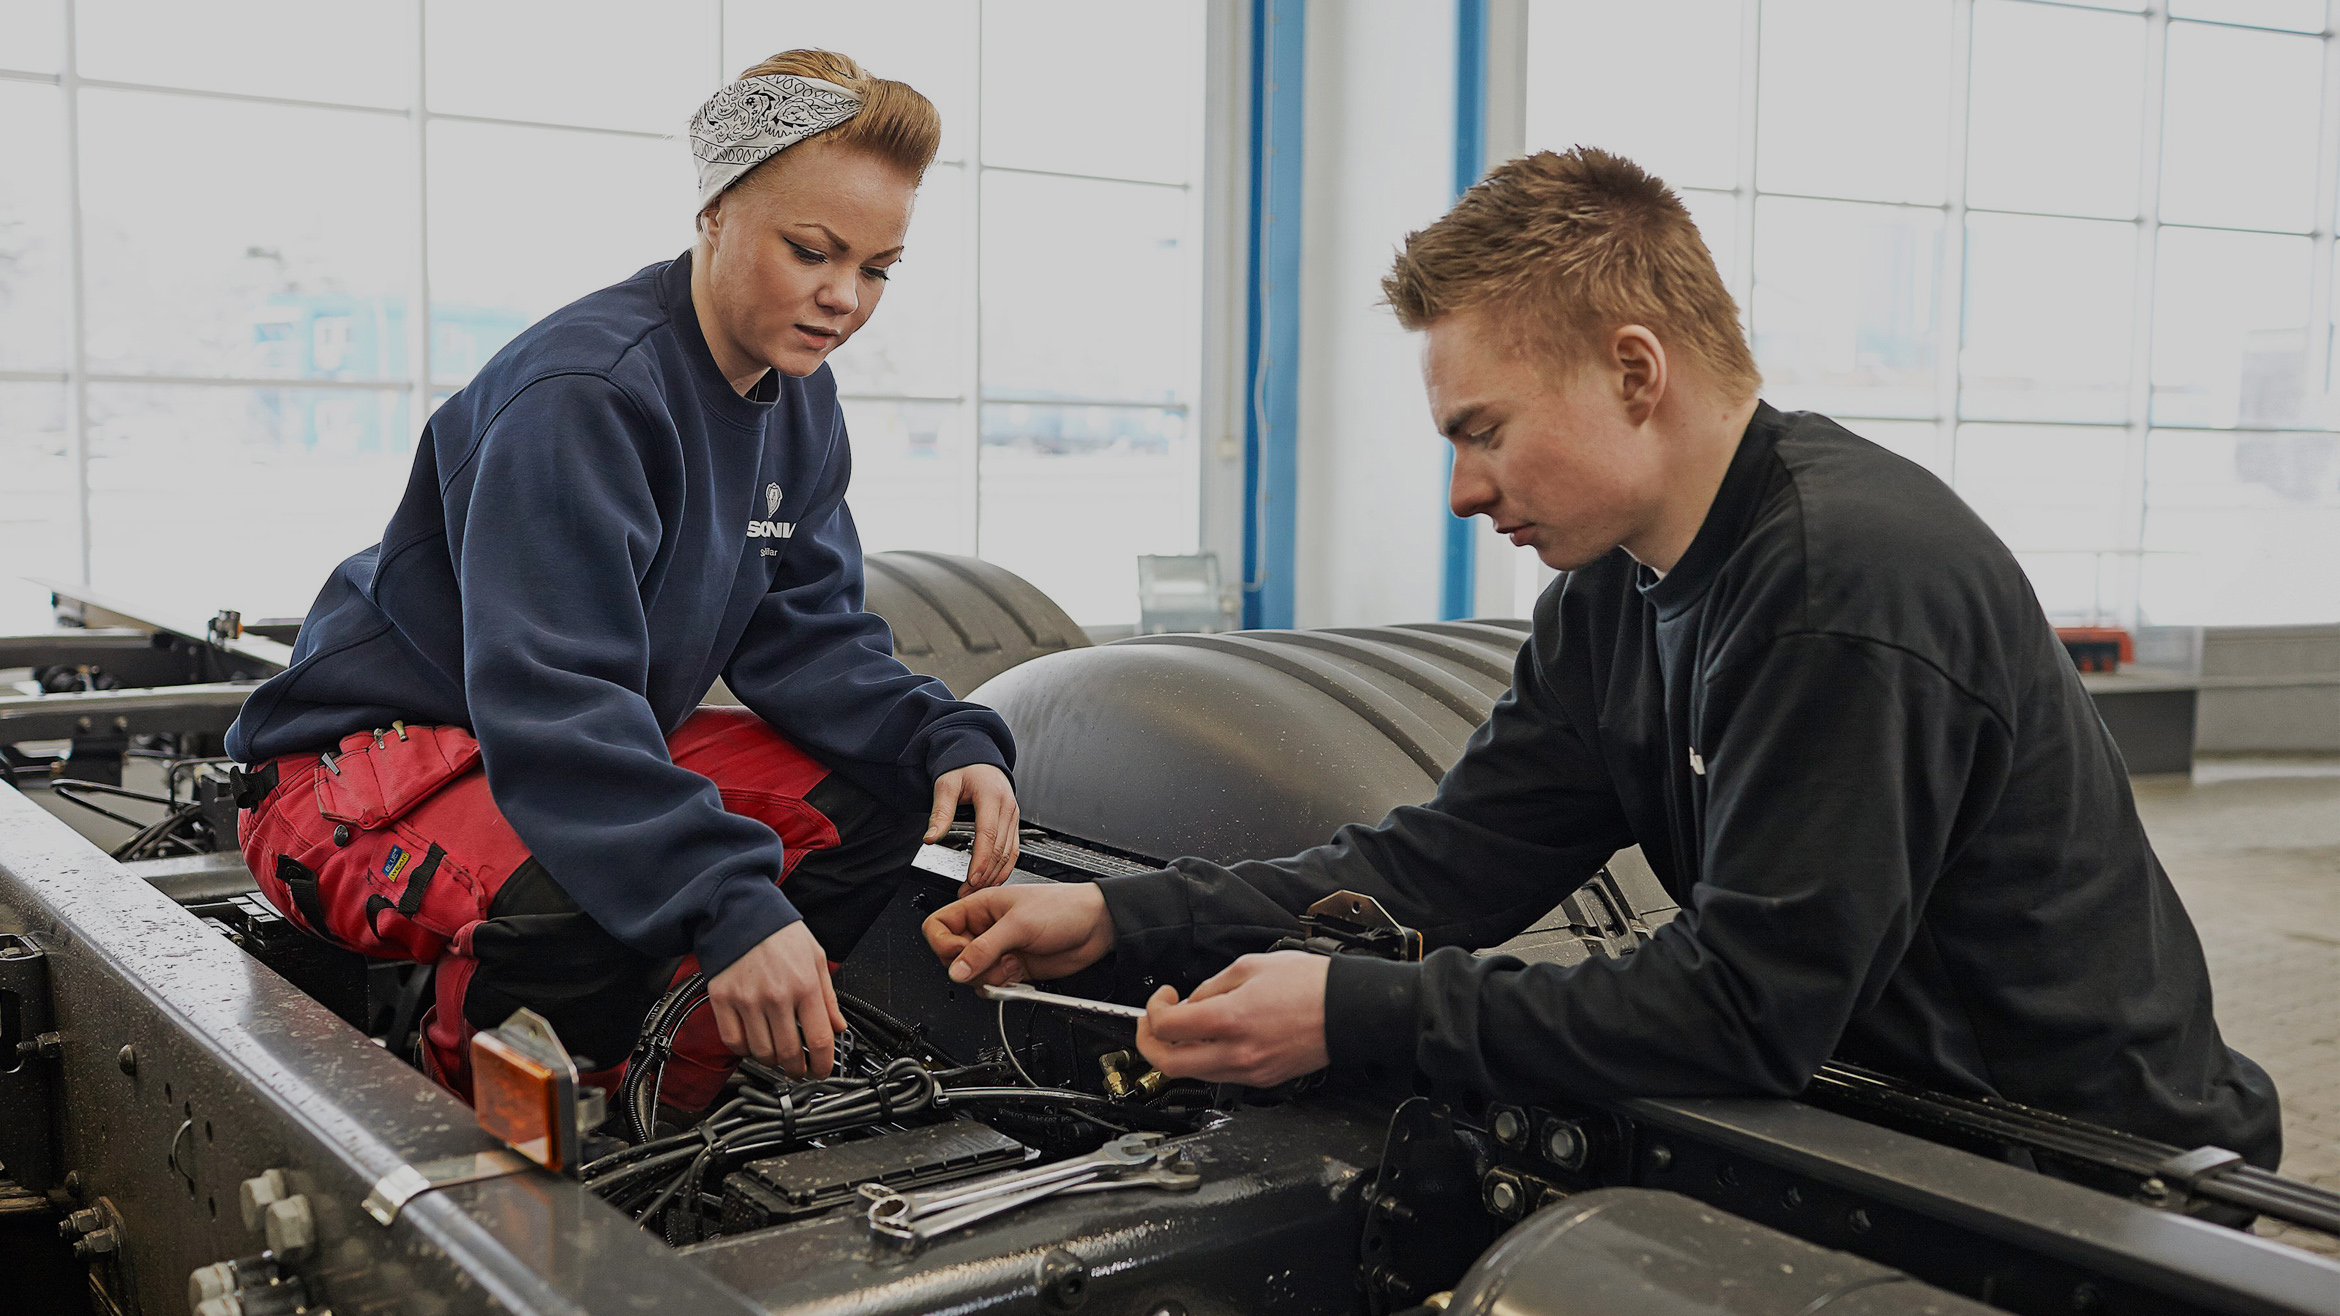 Two engineers working on a Scania truck